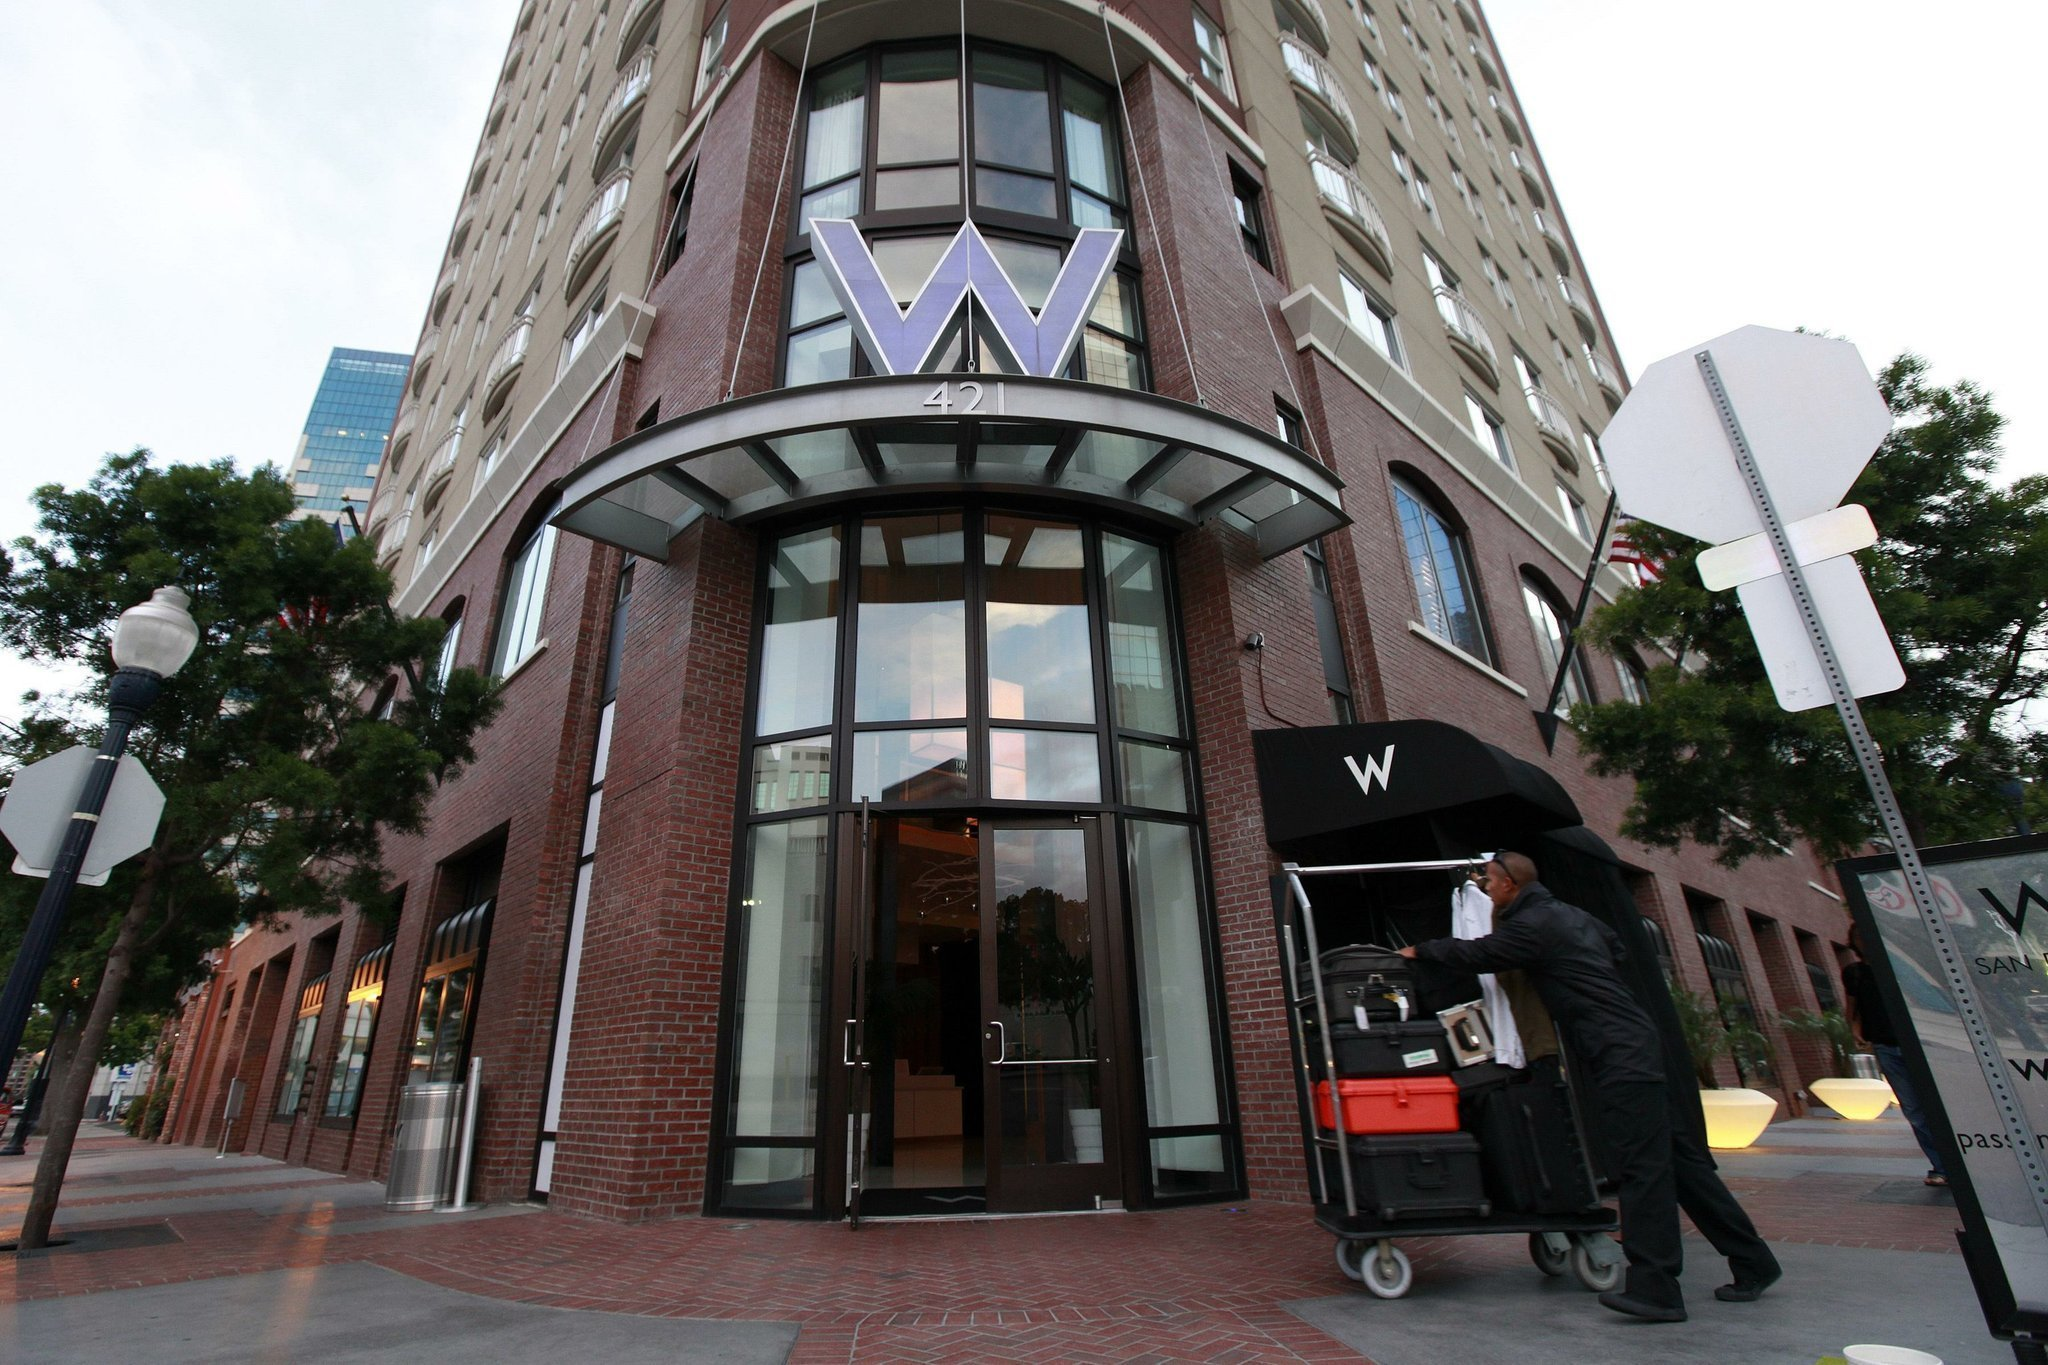 The W San Go Has Been Re Branded As A Renaissance Hotel Union Tribune